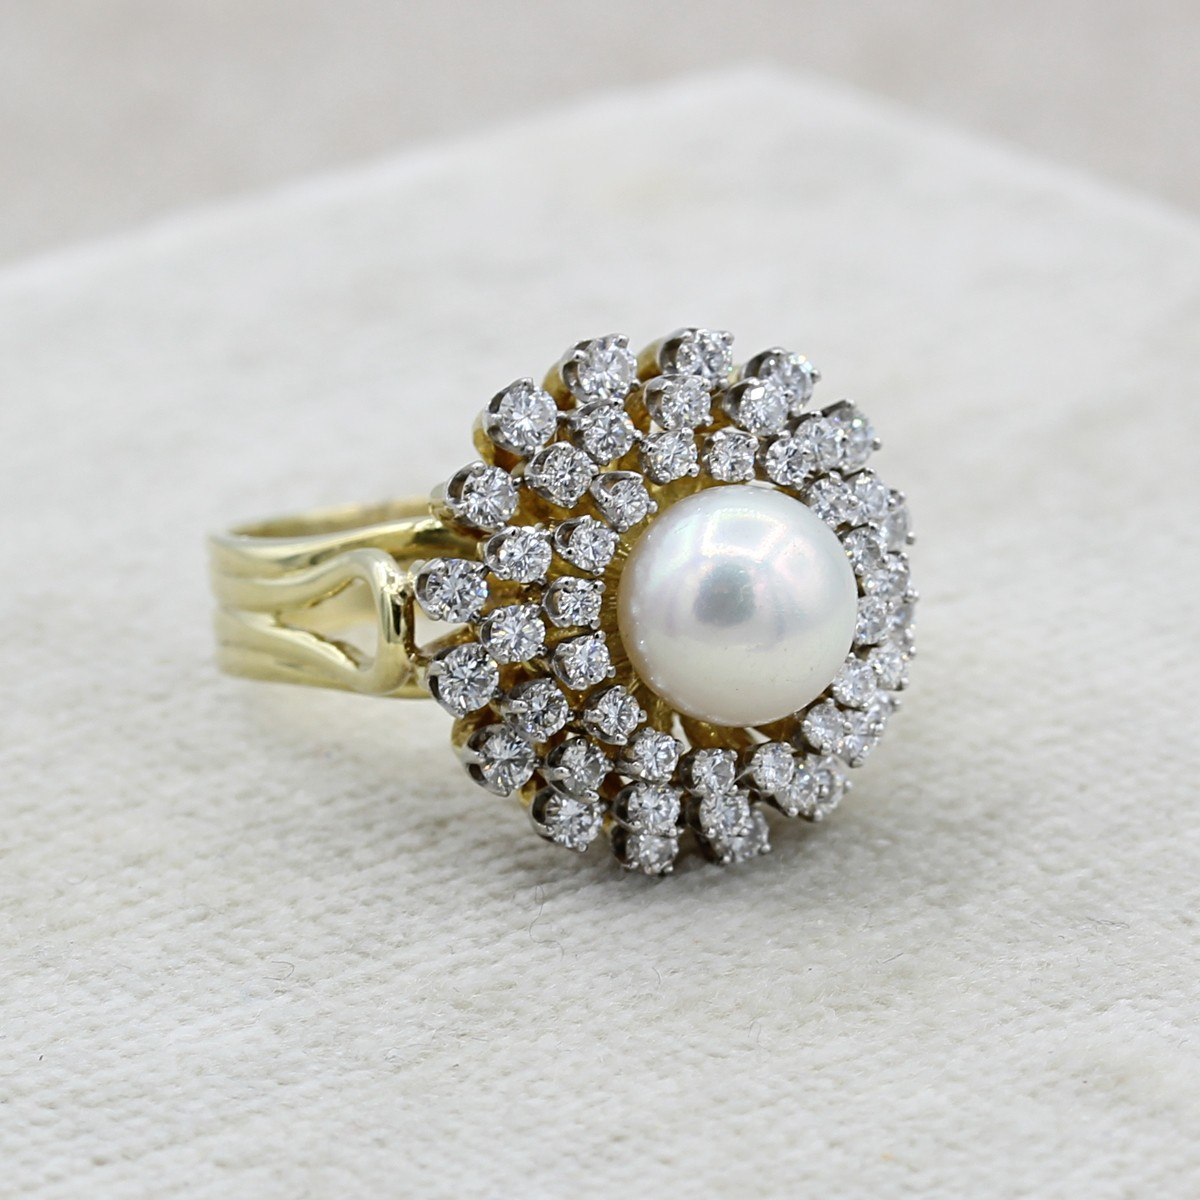 VINTAGE 18K YELLOW AND WHITE GOLD STARBURST RING